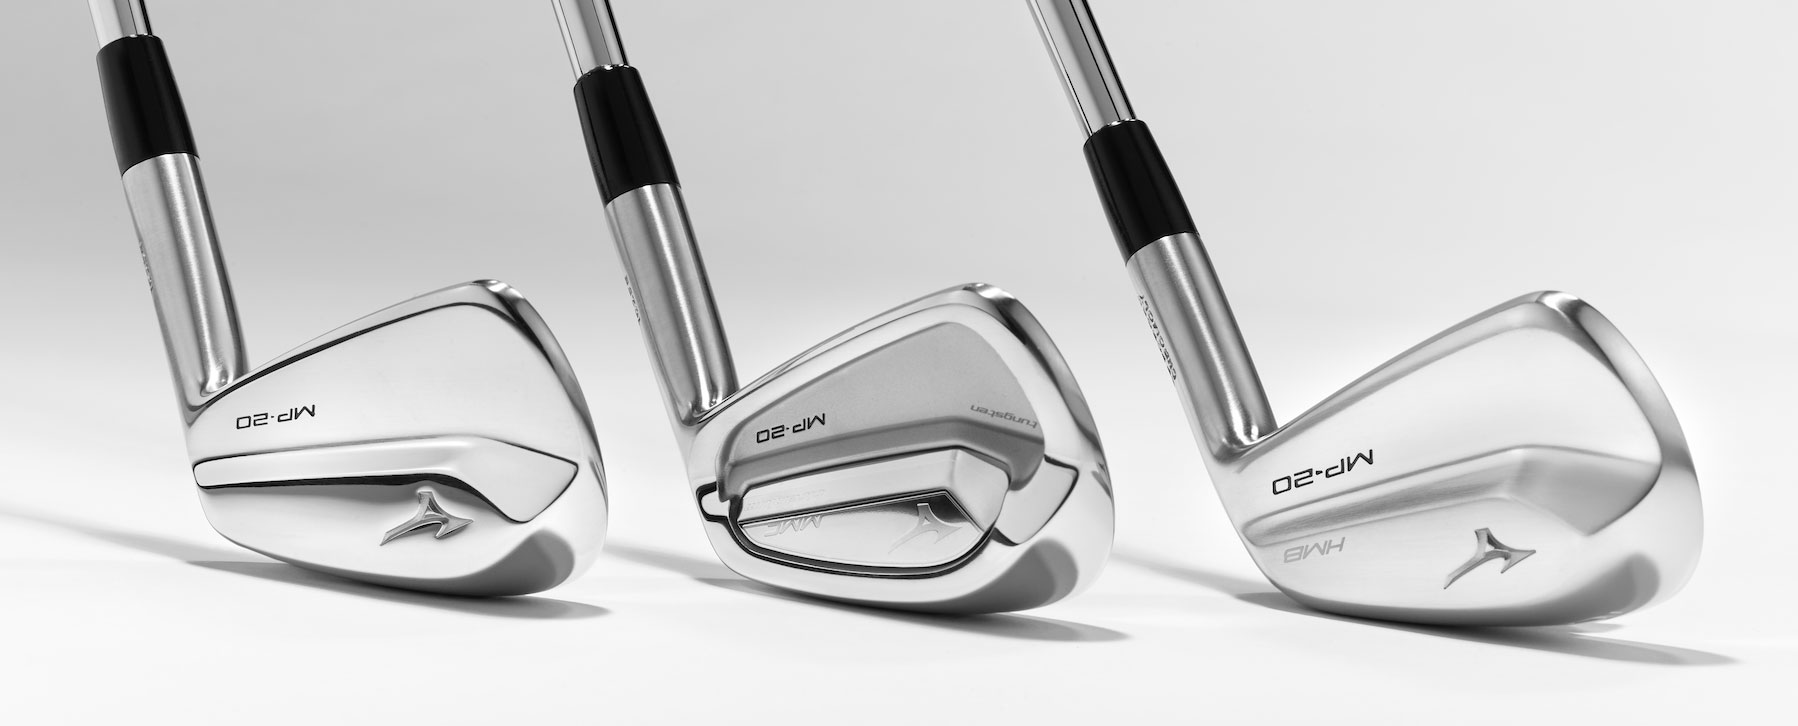 mizuno-mp20-family-of-irons.jpg